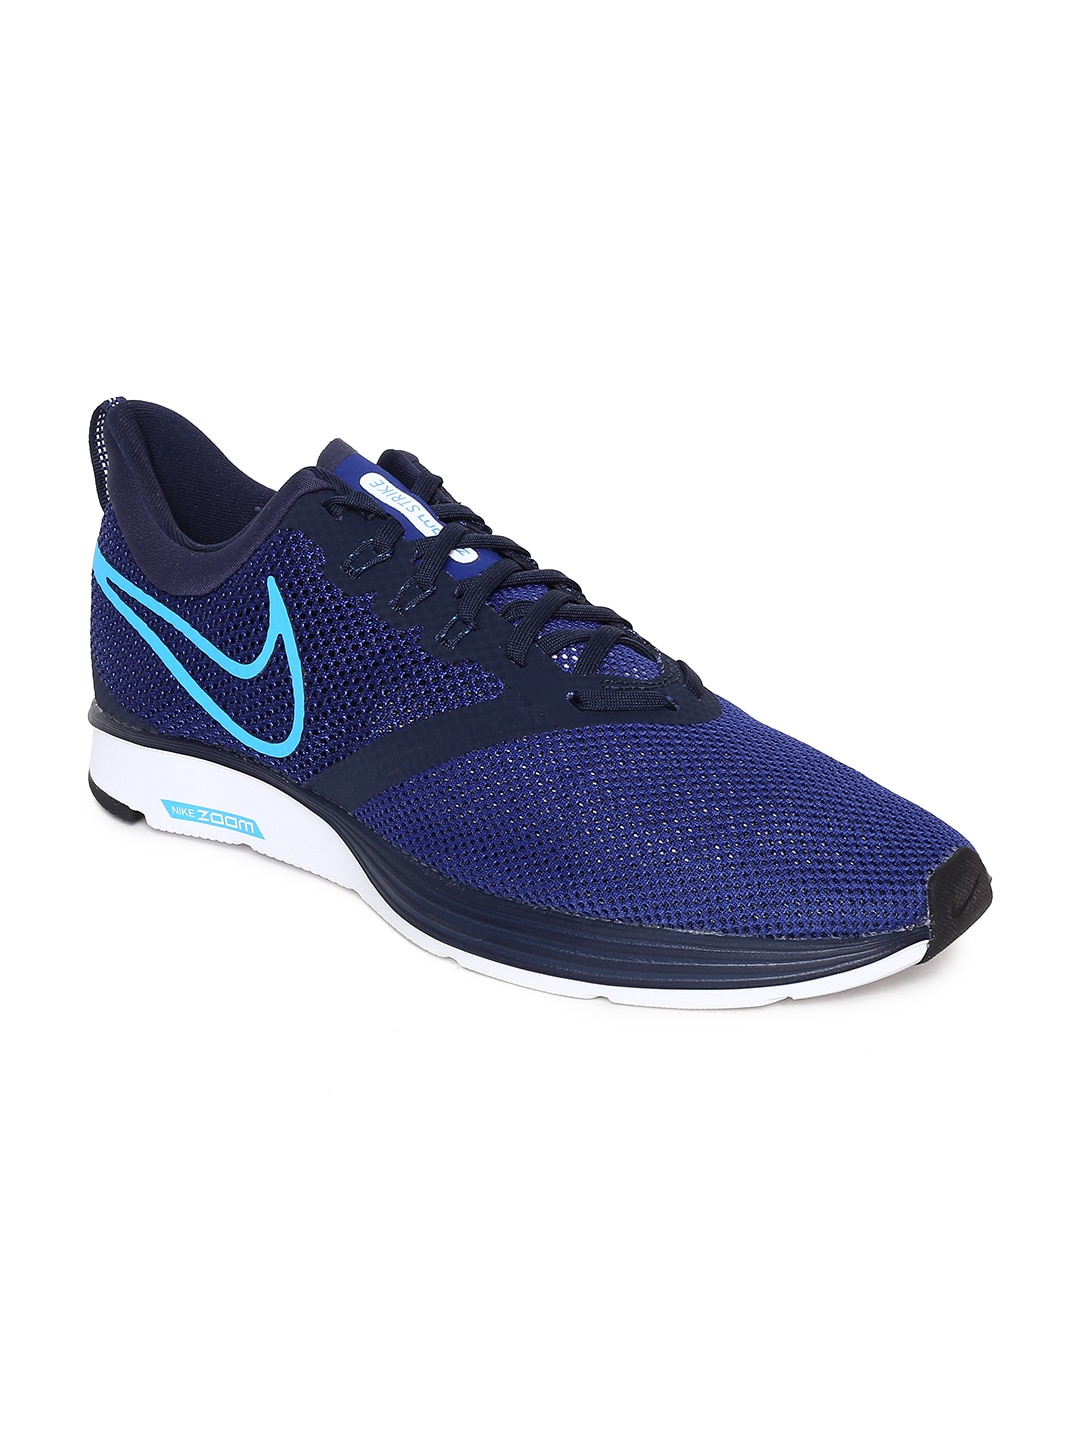 Nike Shoes - Buy Nike Shoes for Men   Women Online  a413f463d9c1